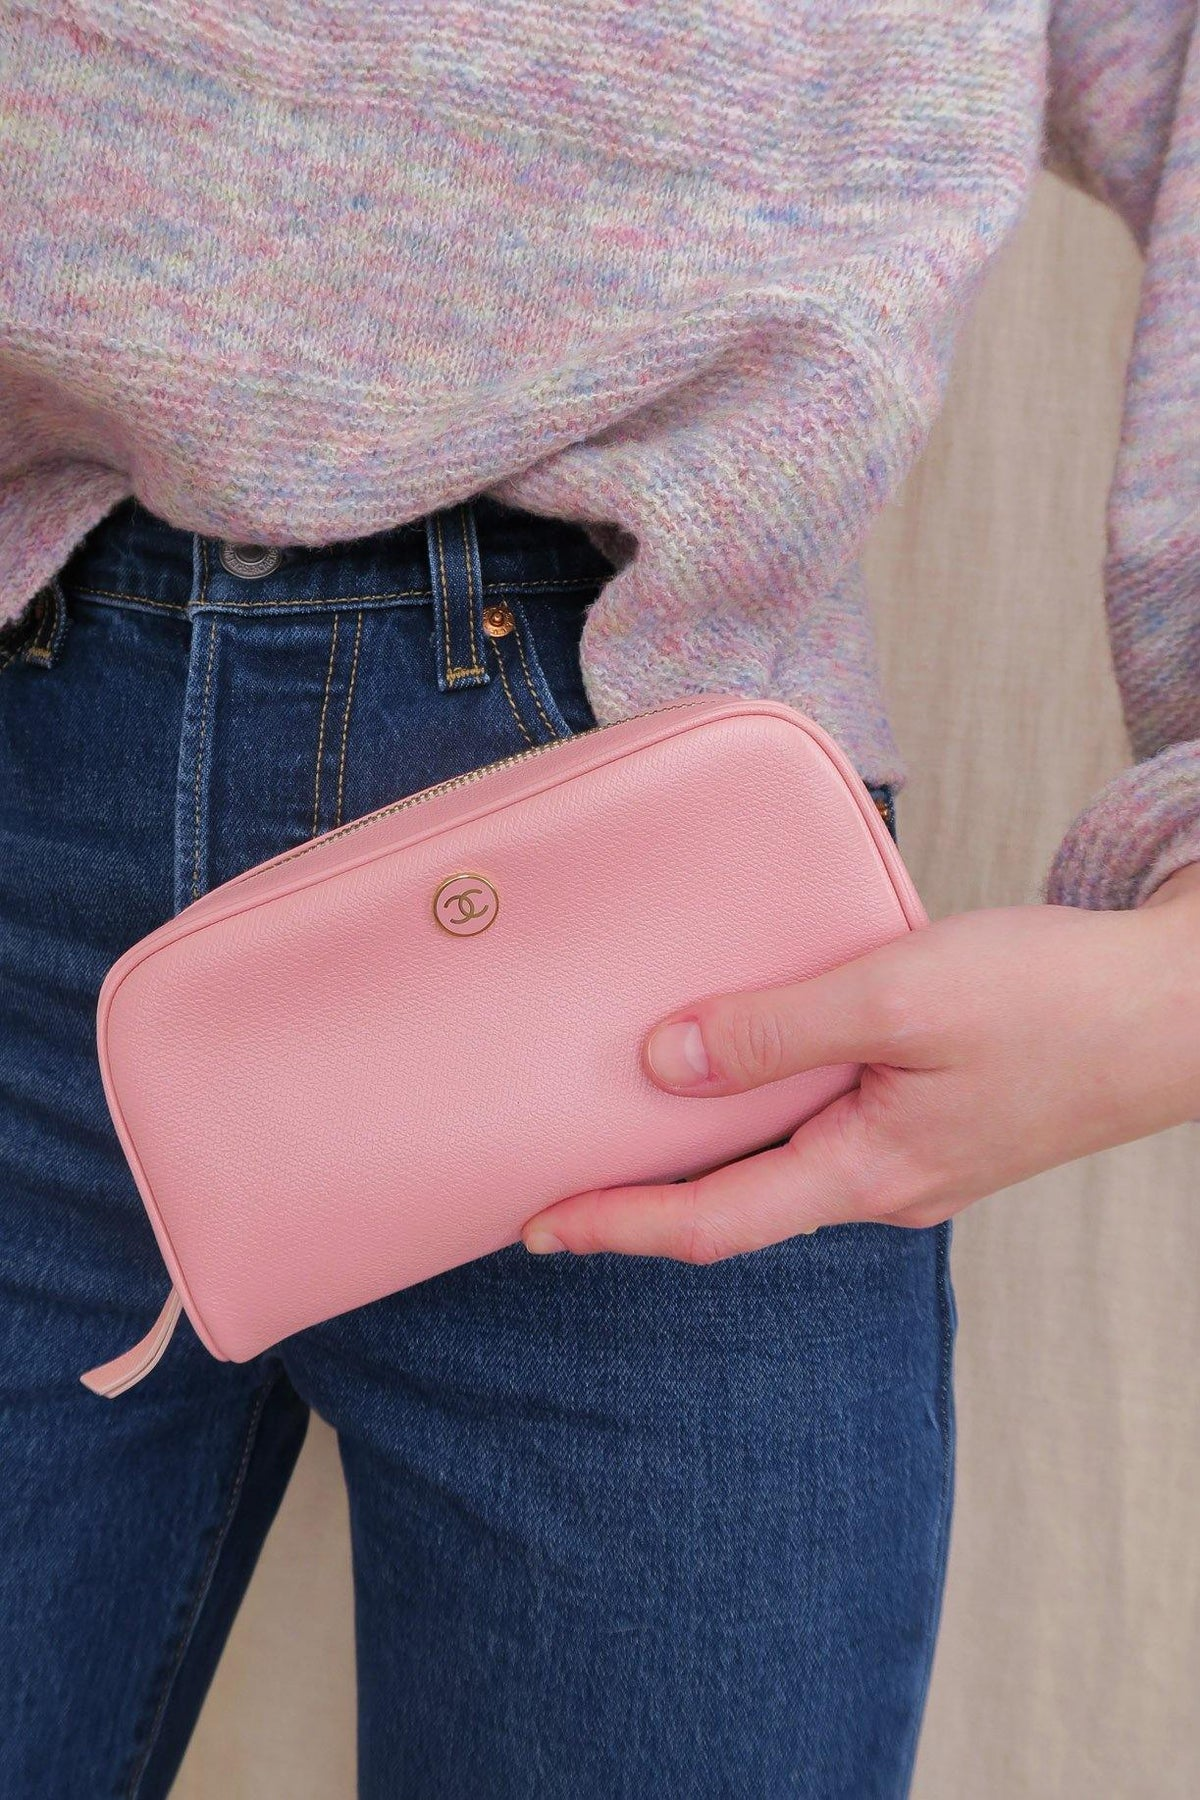 Chanel Pink Leather Zip Pouch